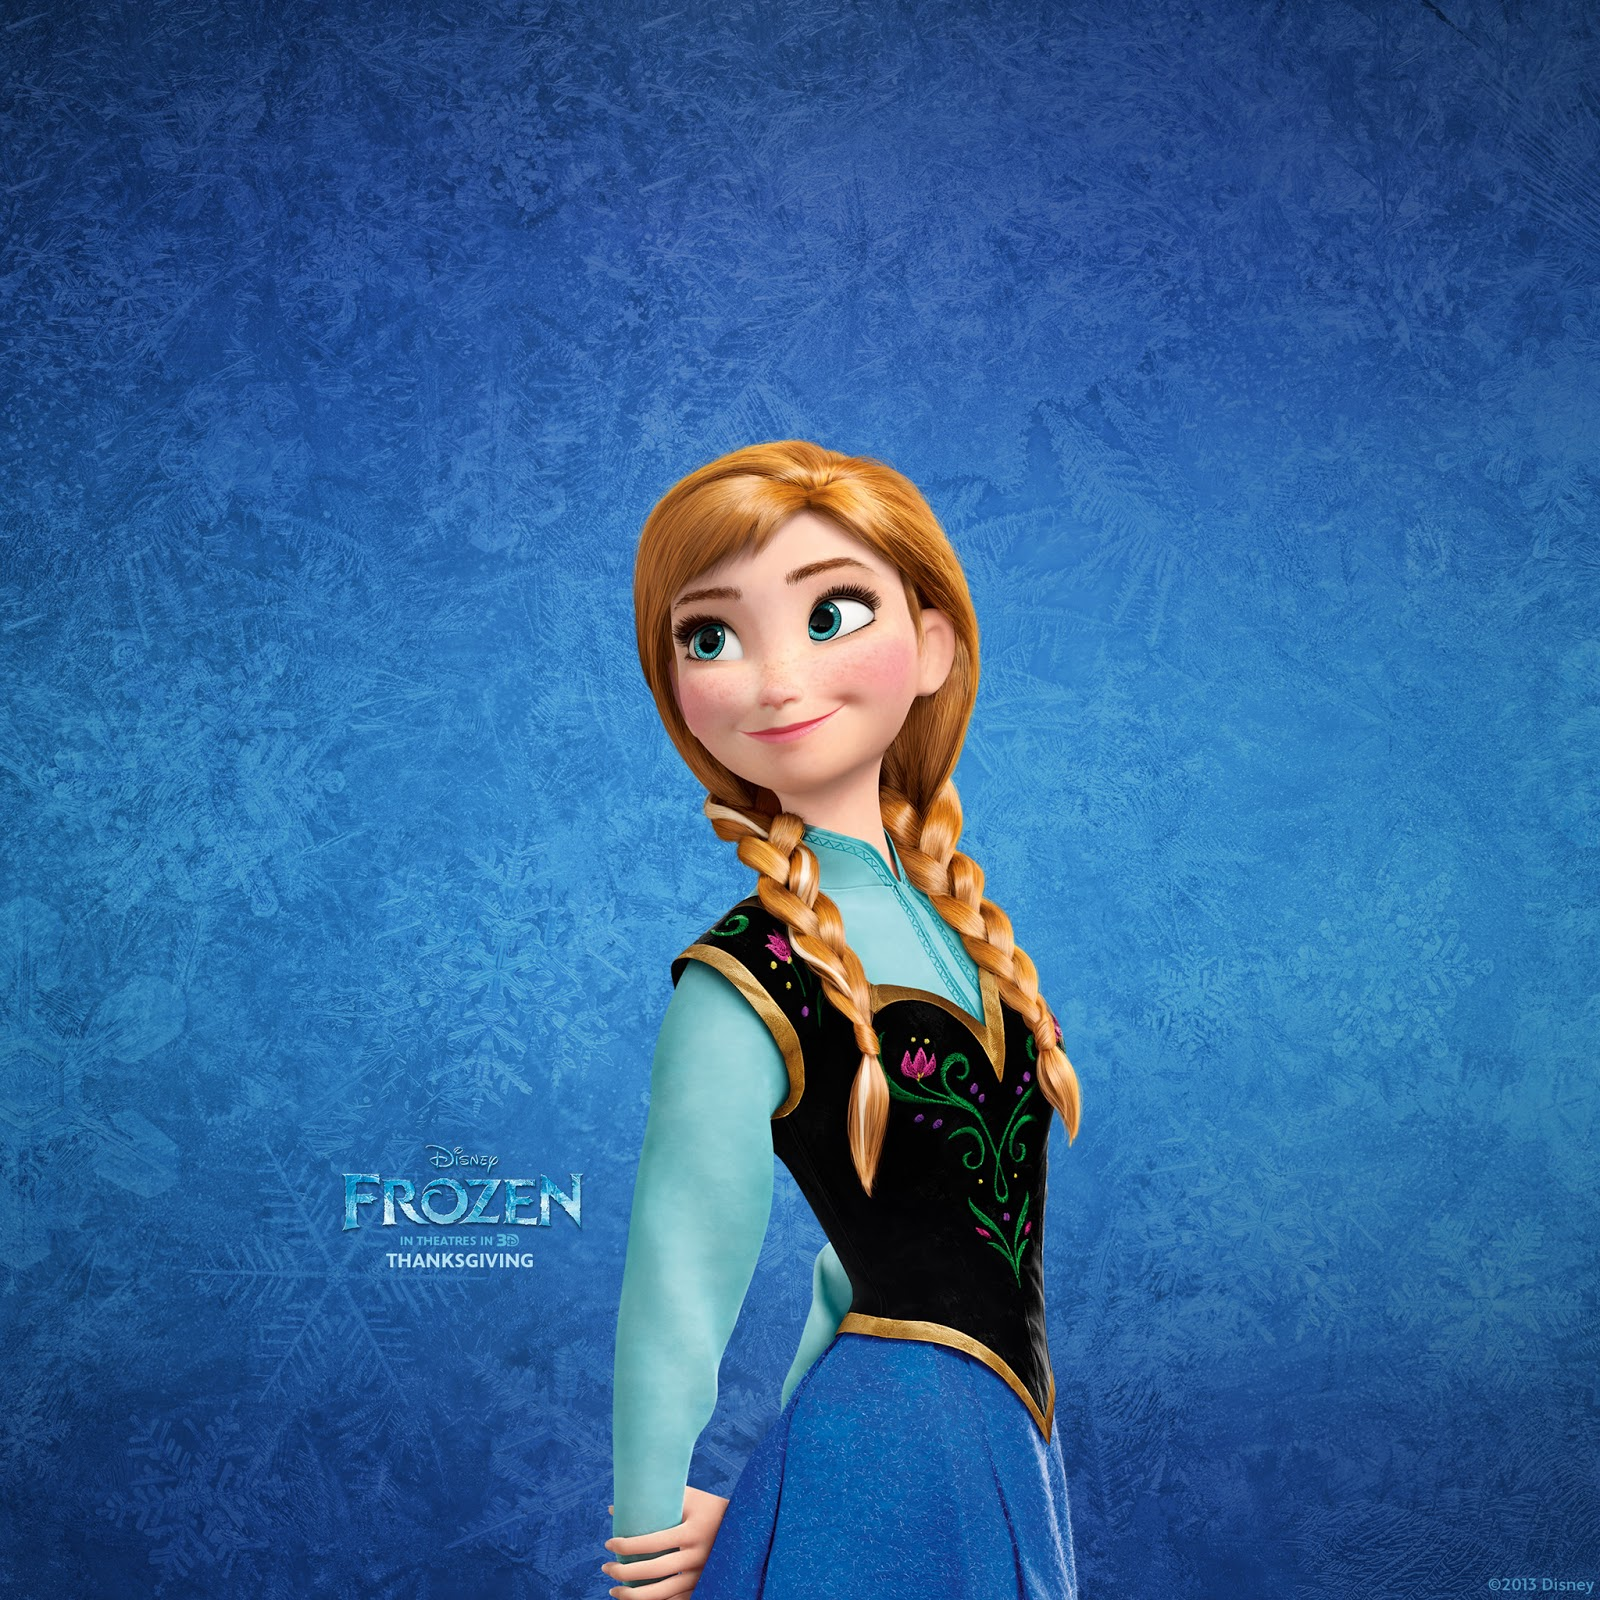 free frozen movie download for ipad